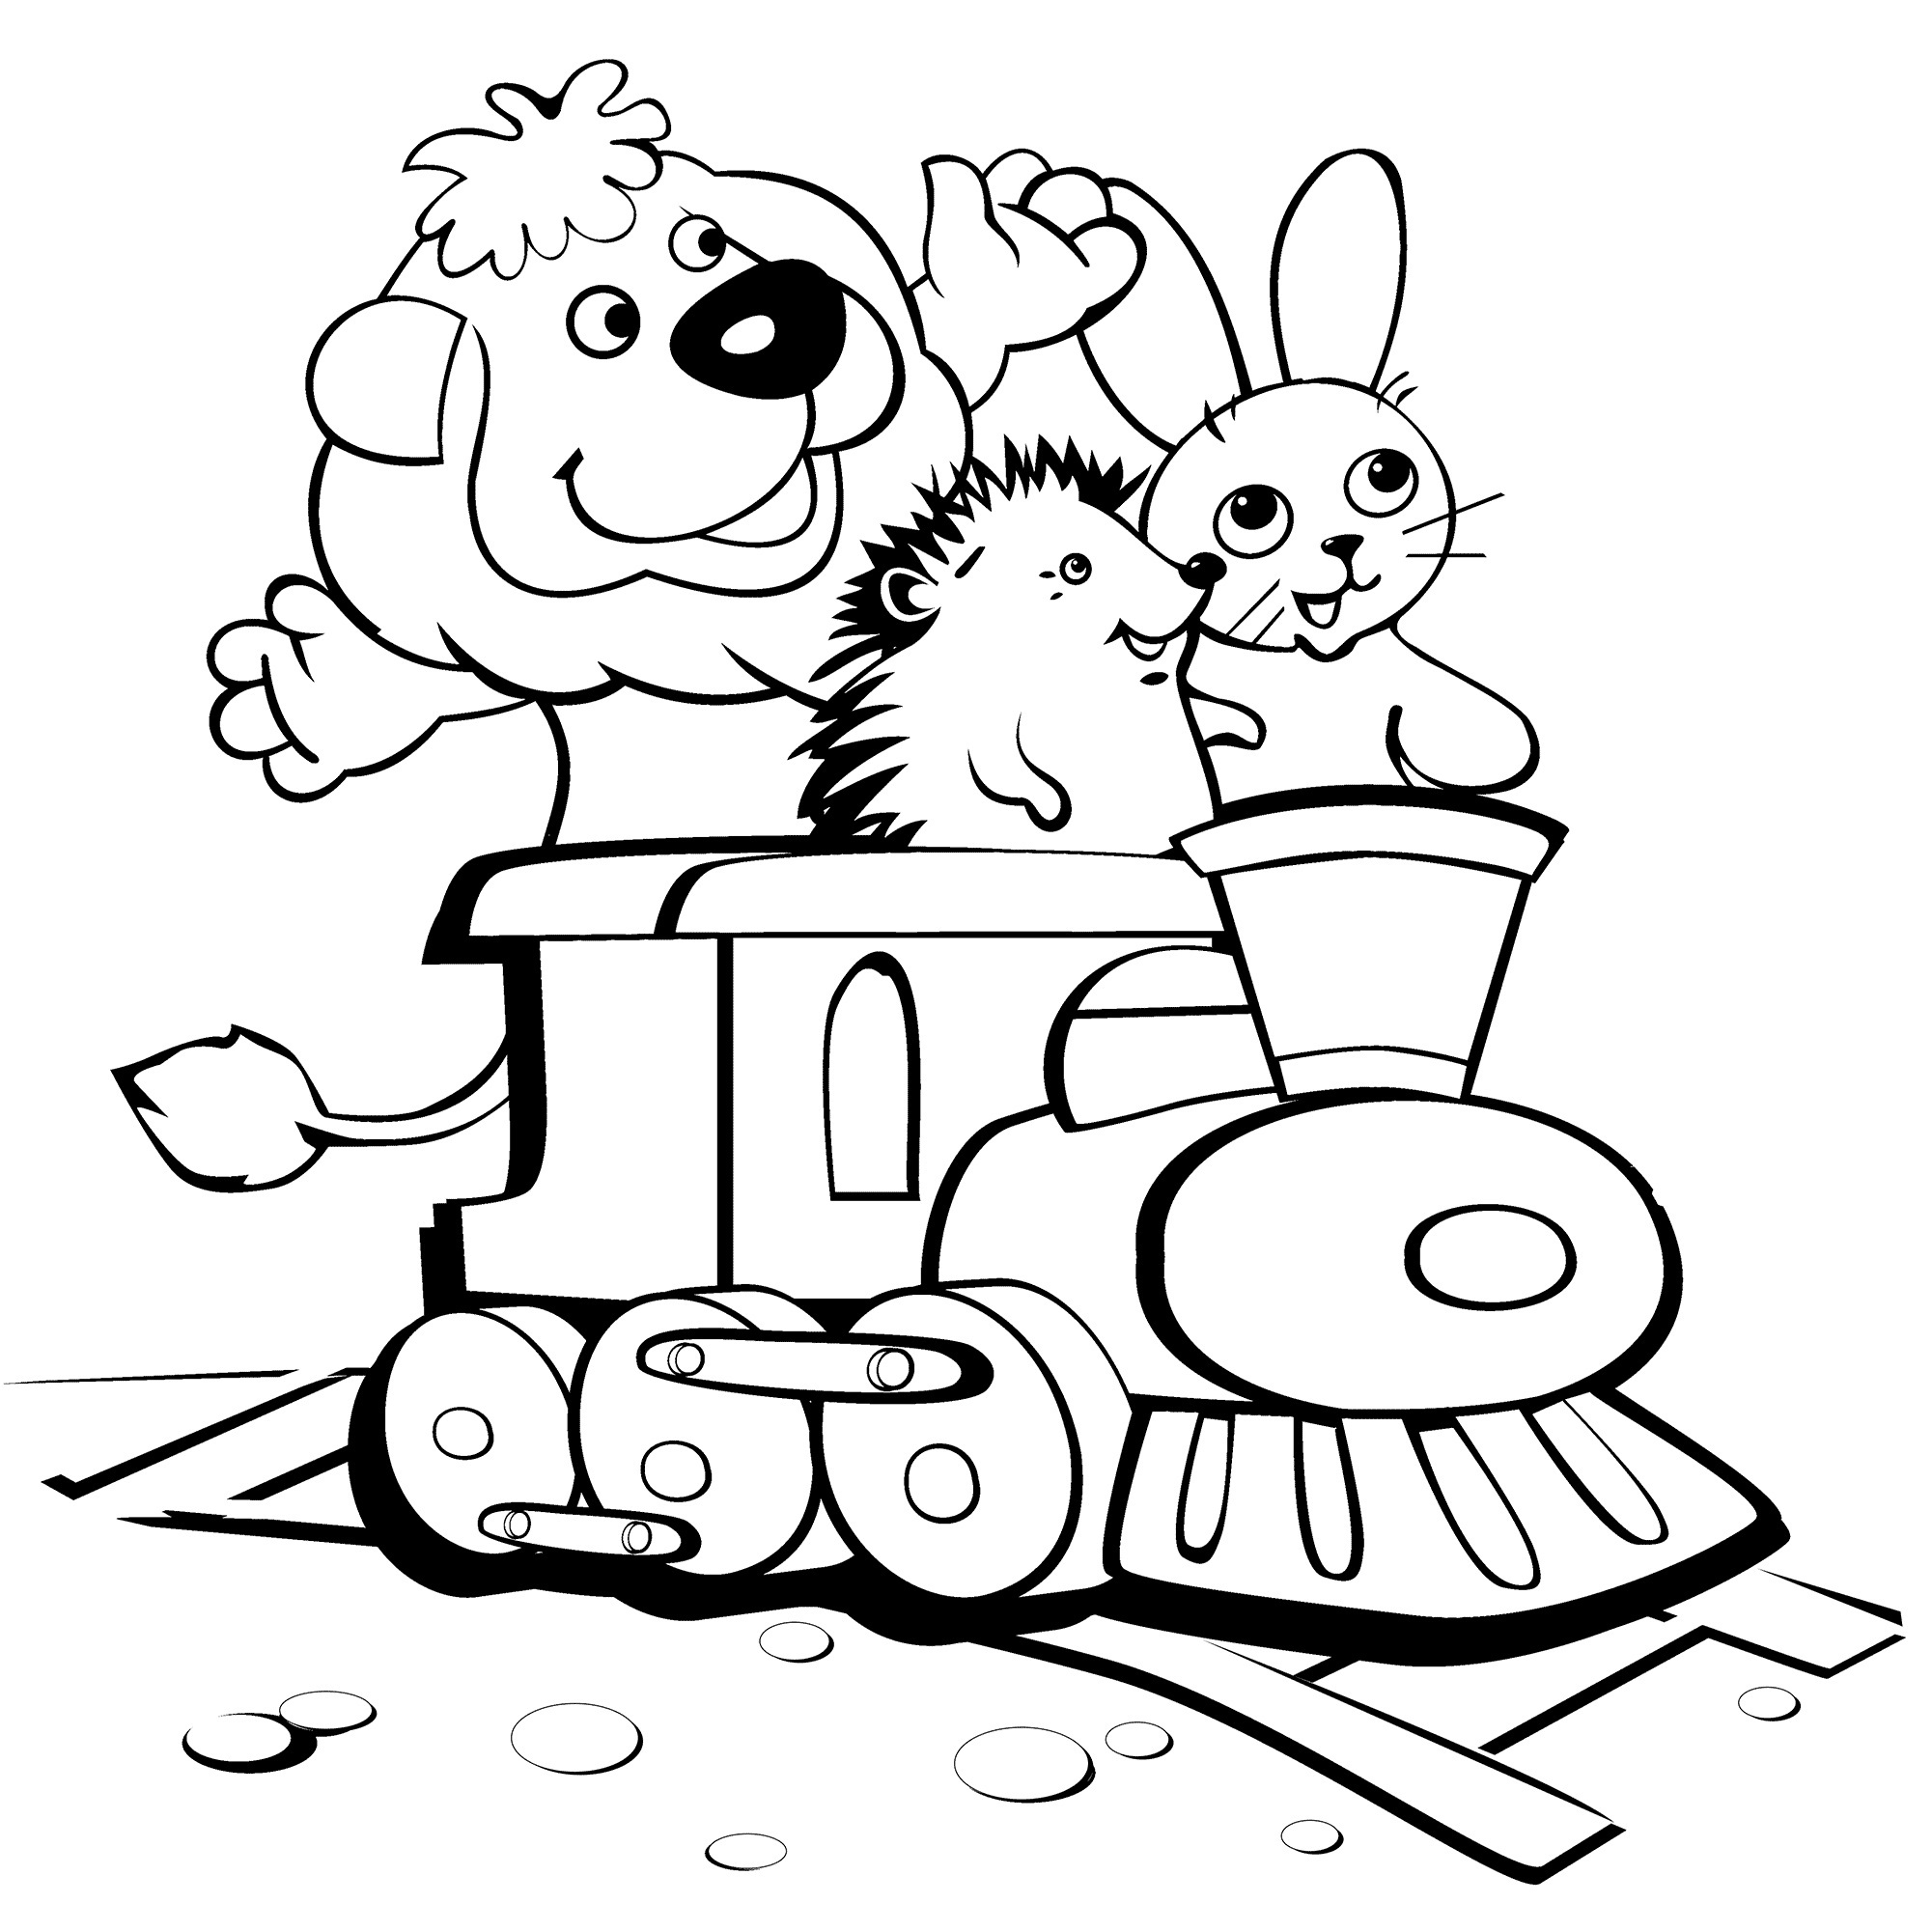 funny coloring pages to print free printable funny coloring pages for kids to pages coloring funny print